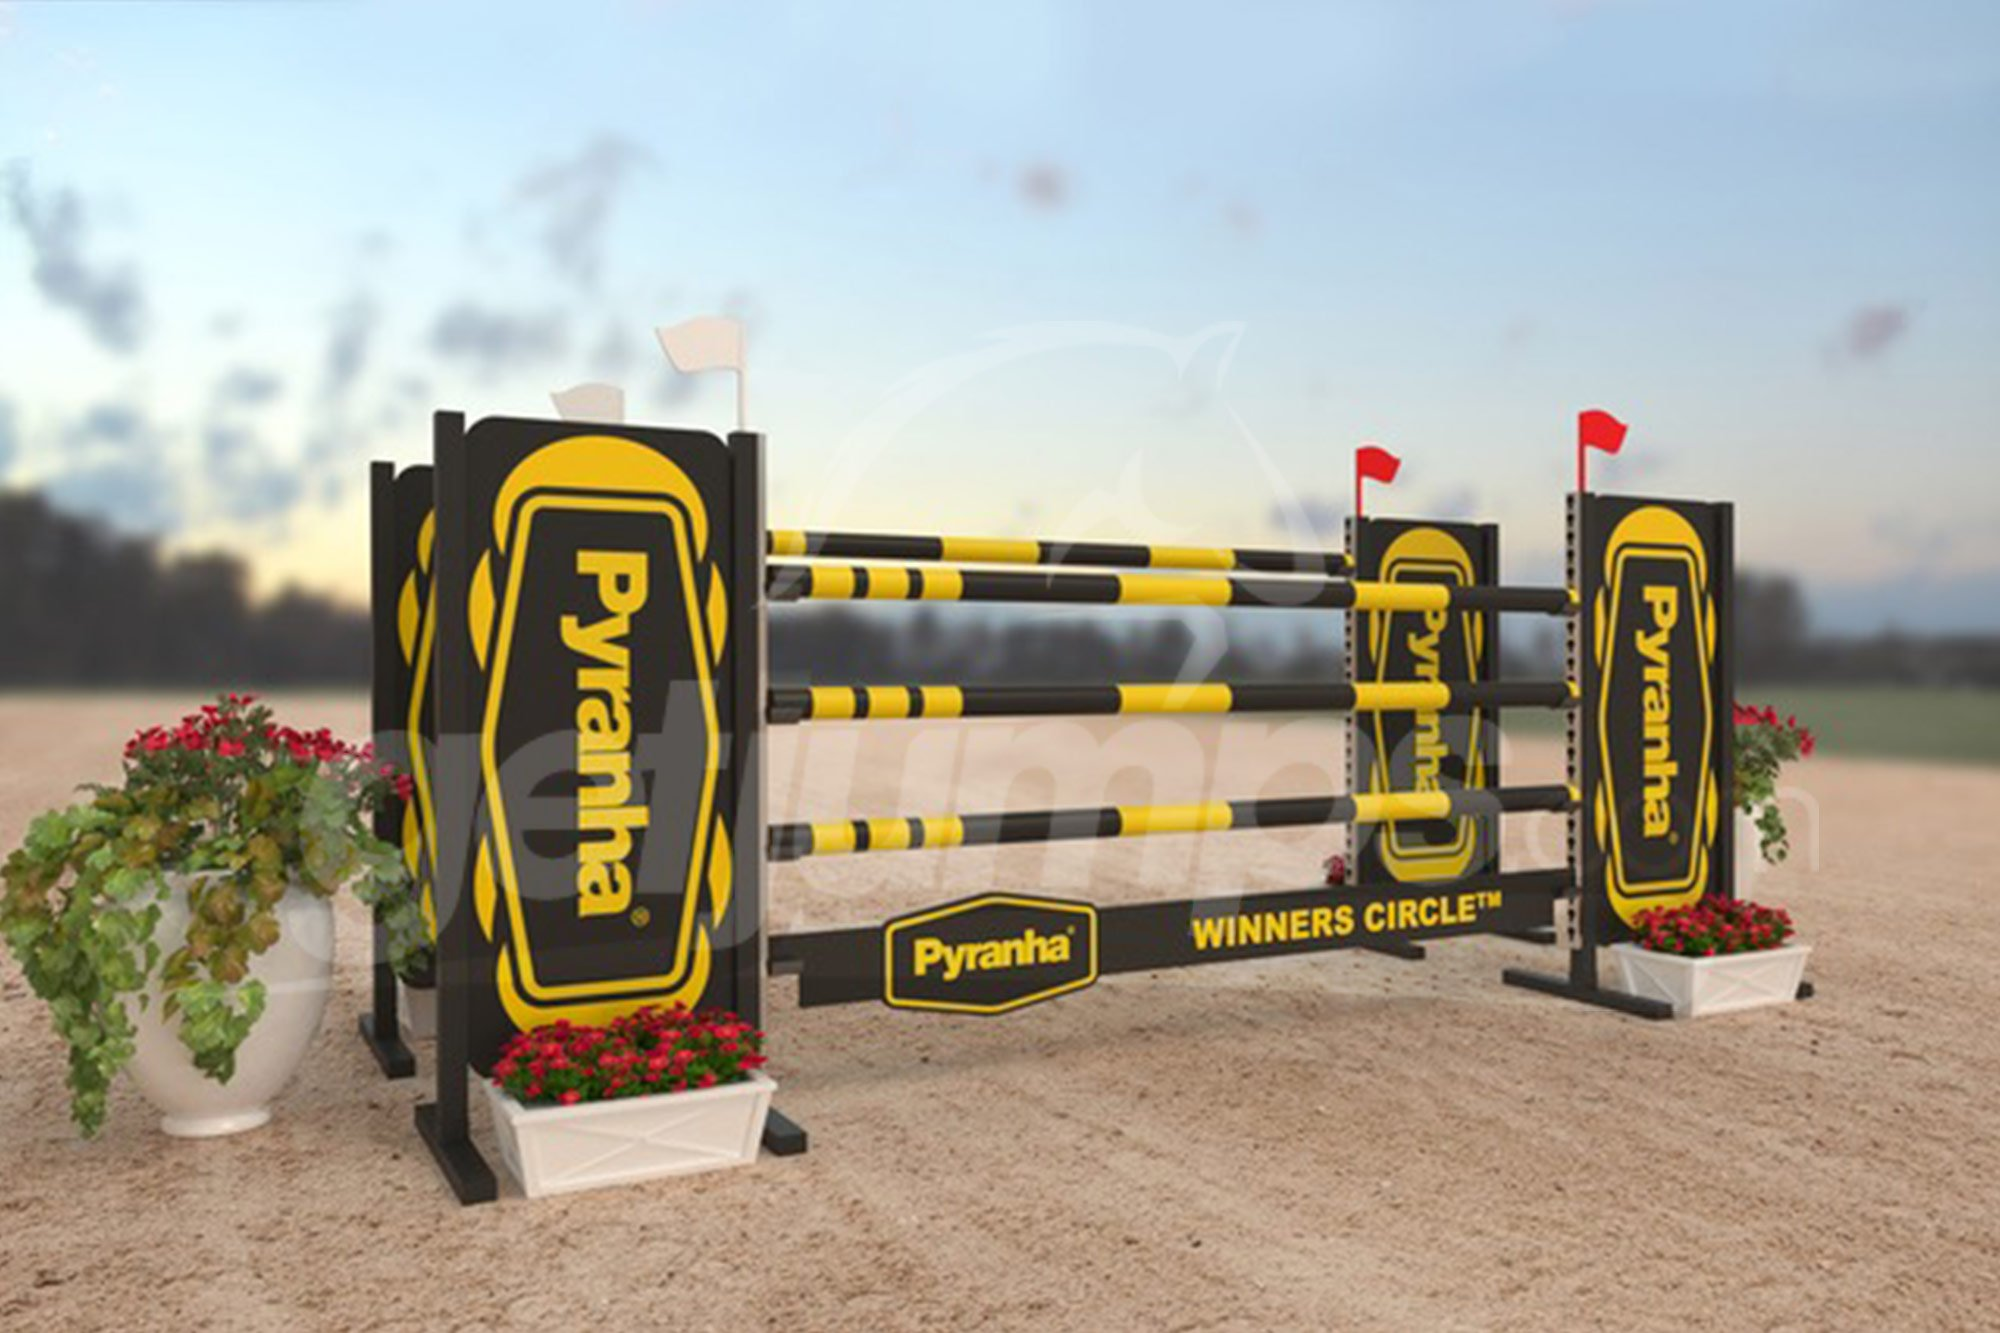 Pyranha themed black and yellow sponsor jump